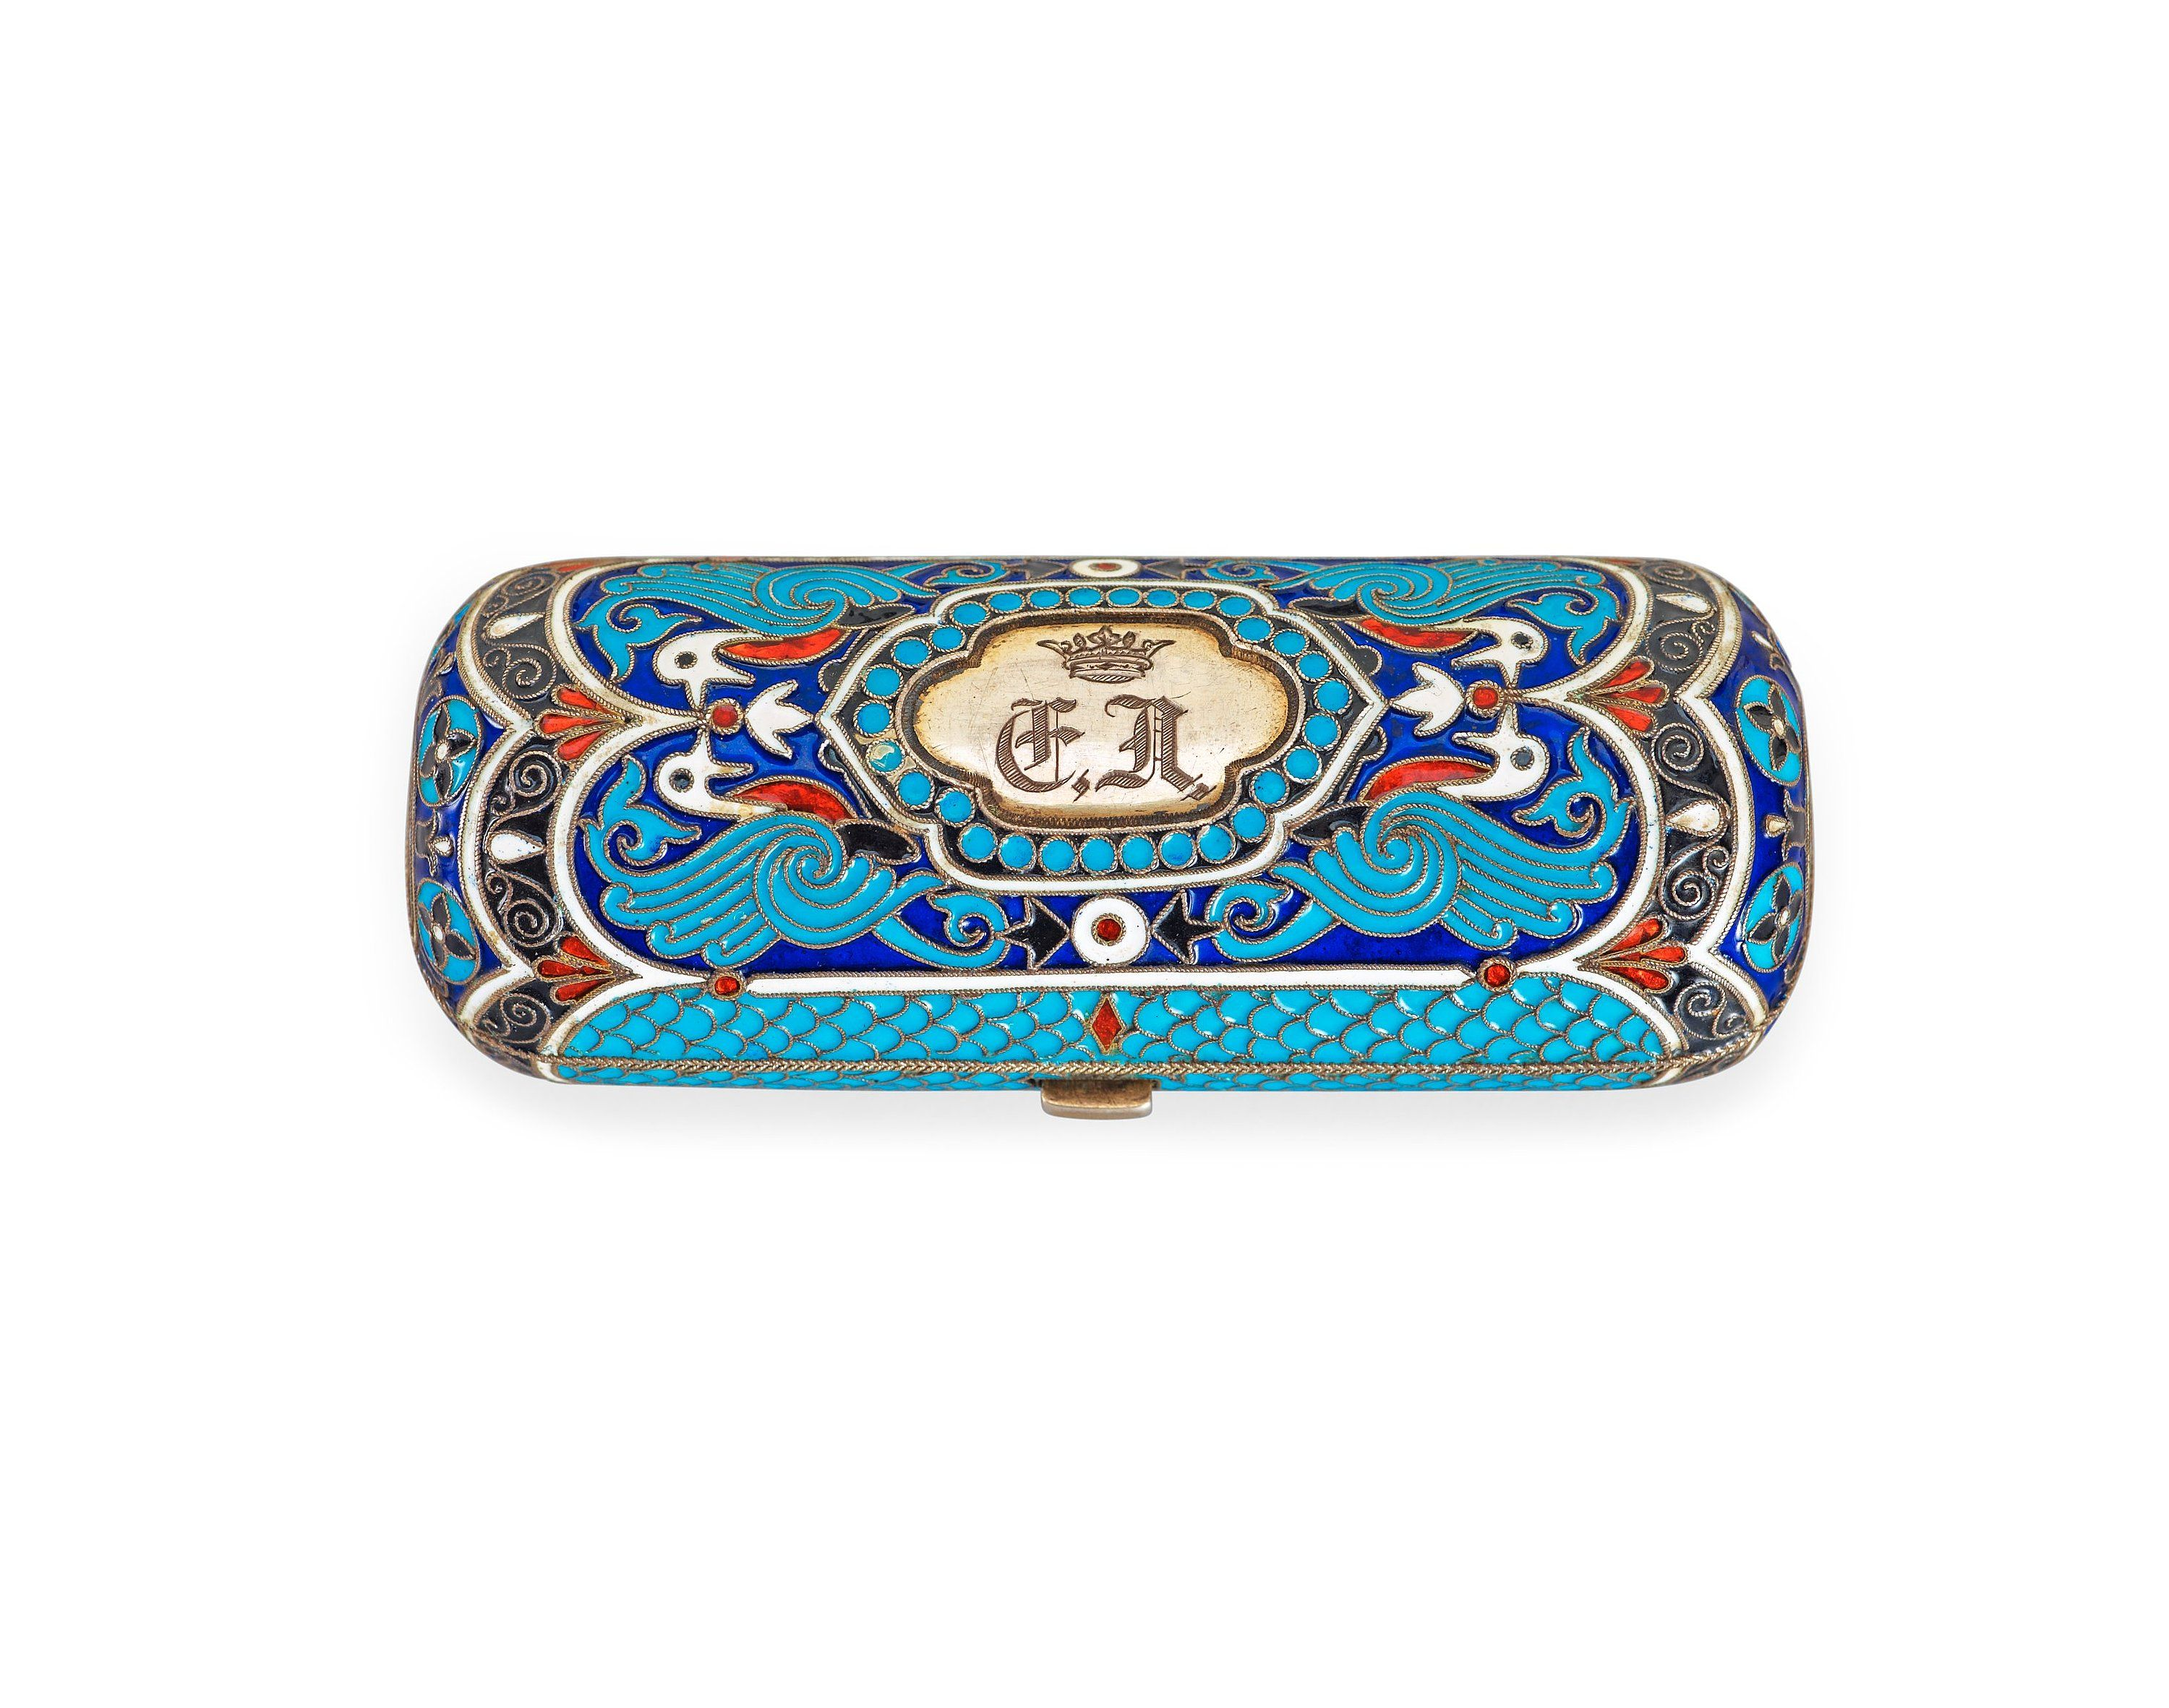 A Russian 19th century silver-gilt and enamel cigarette-case, makers mark of Ivan Chlebnikov, Moscow.